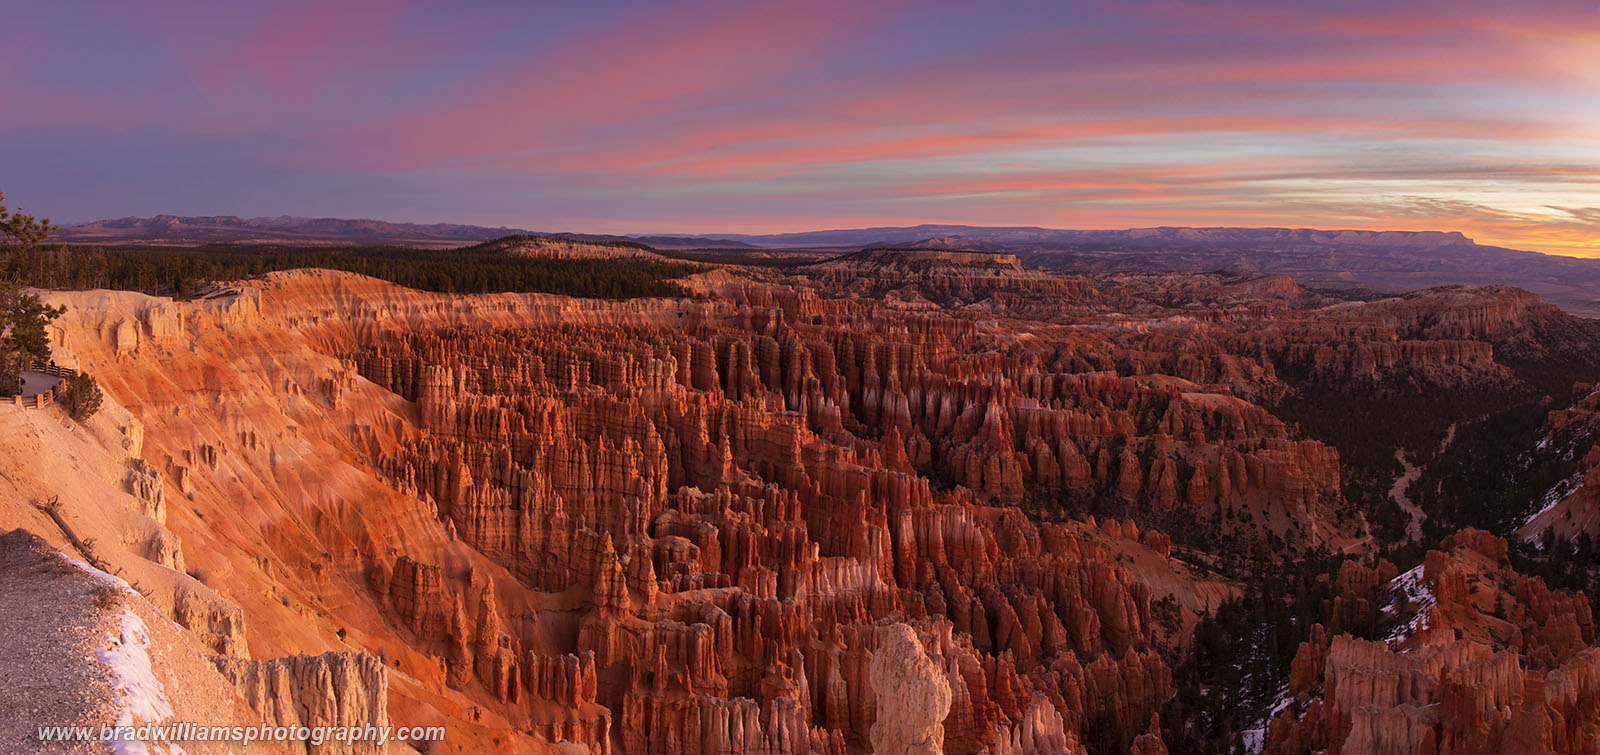 Bryce Canyon, National Park, Hoodoos, Sunrise, photo